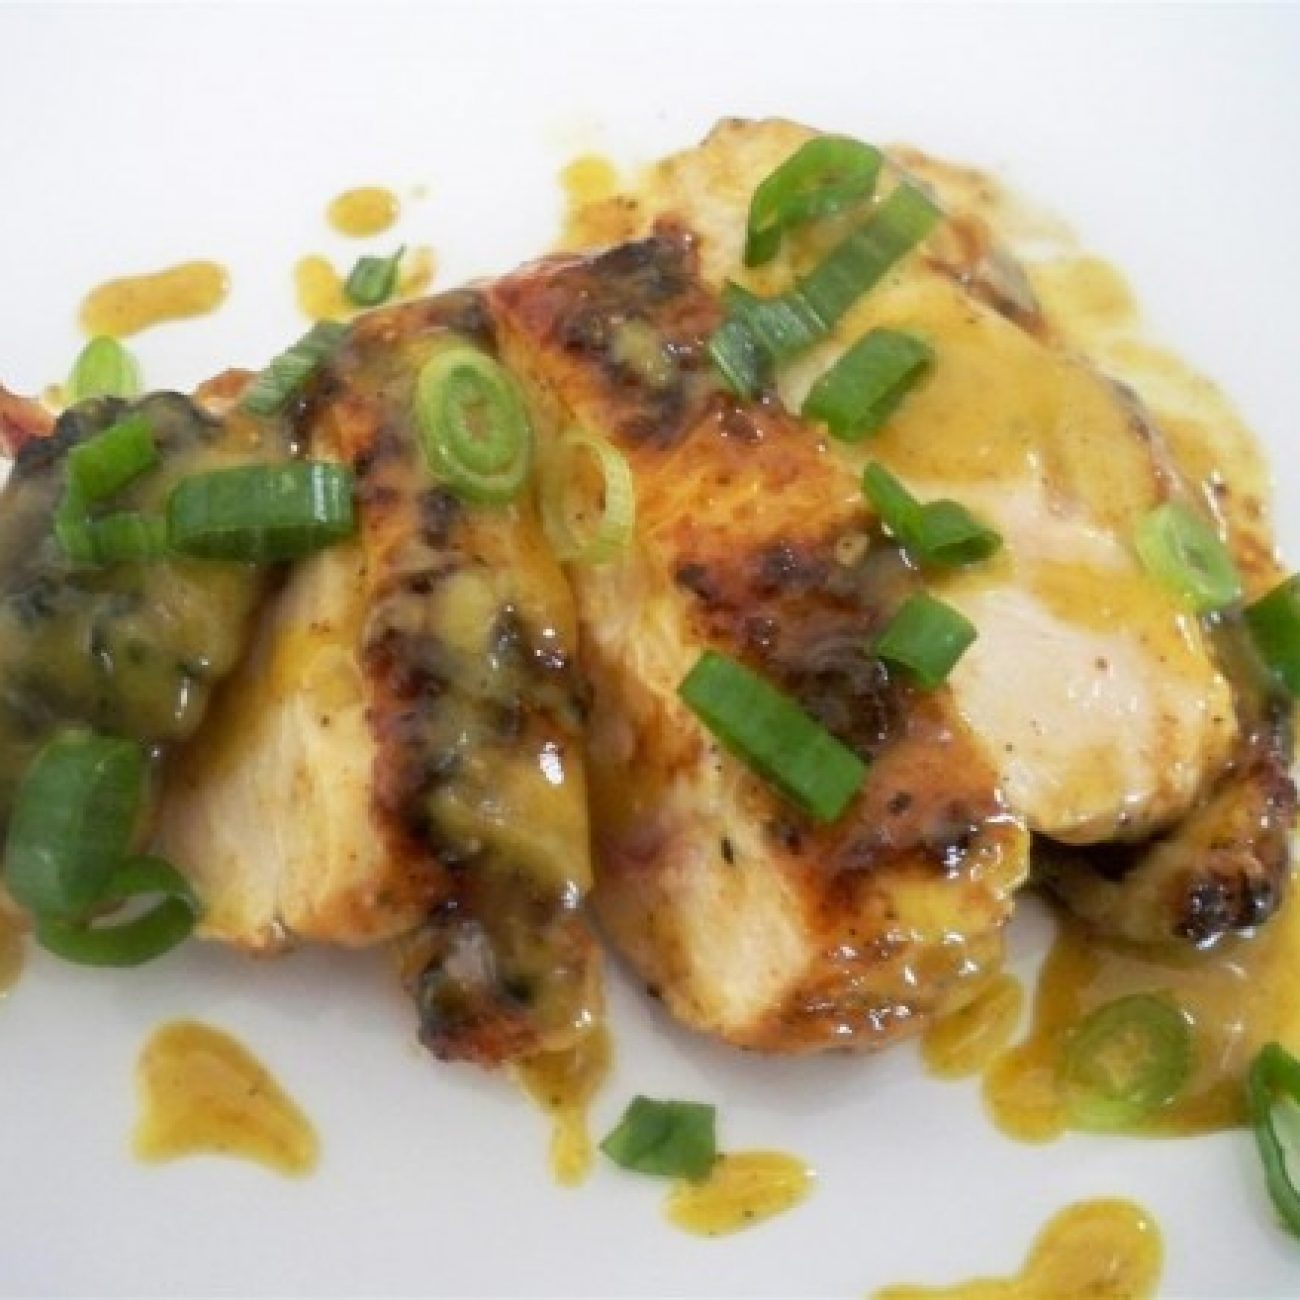 BBQ Spice Rub Grilled Chicken Breast with Black Pepper Mustard Vinaigrette